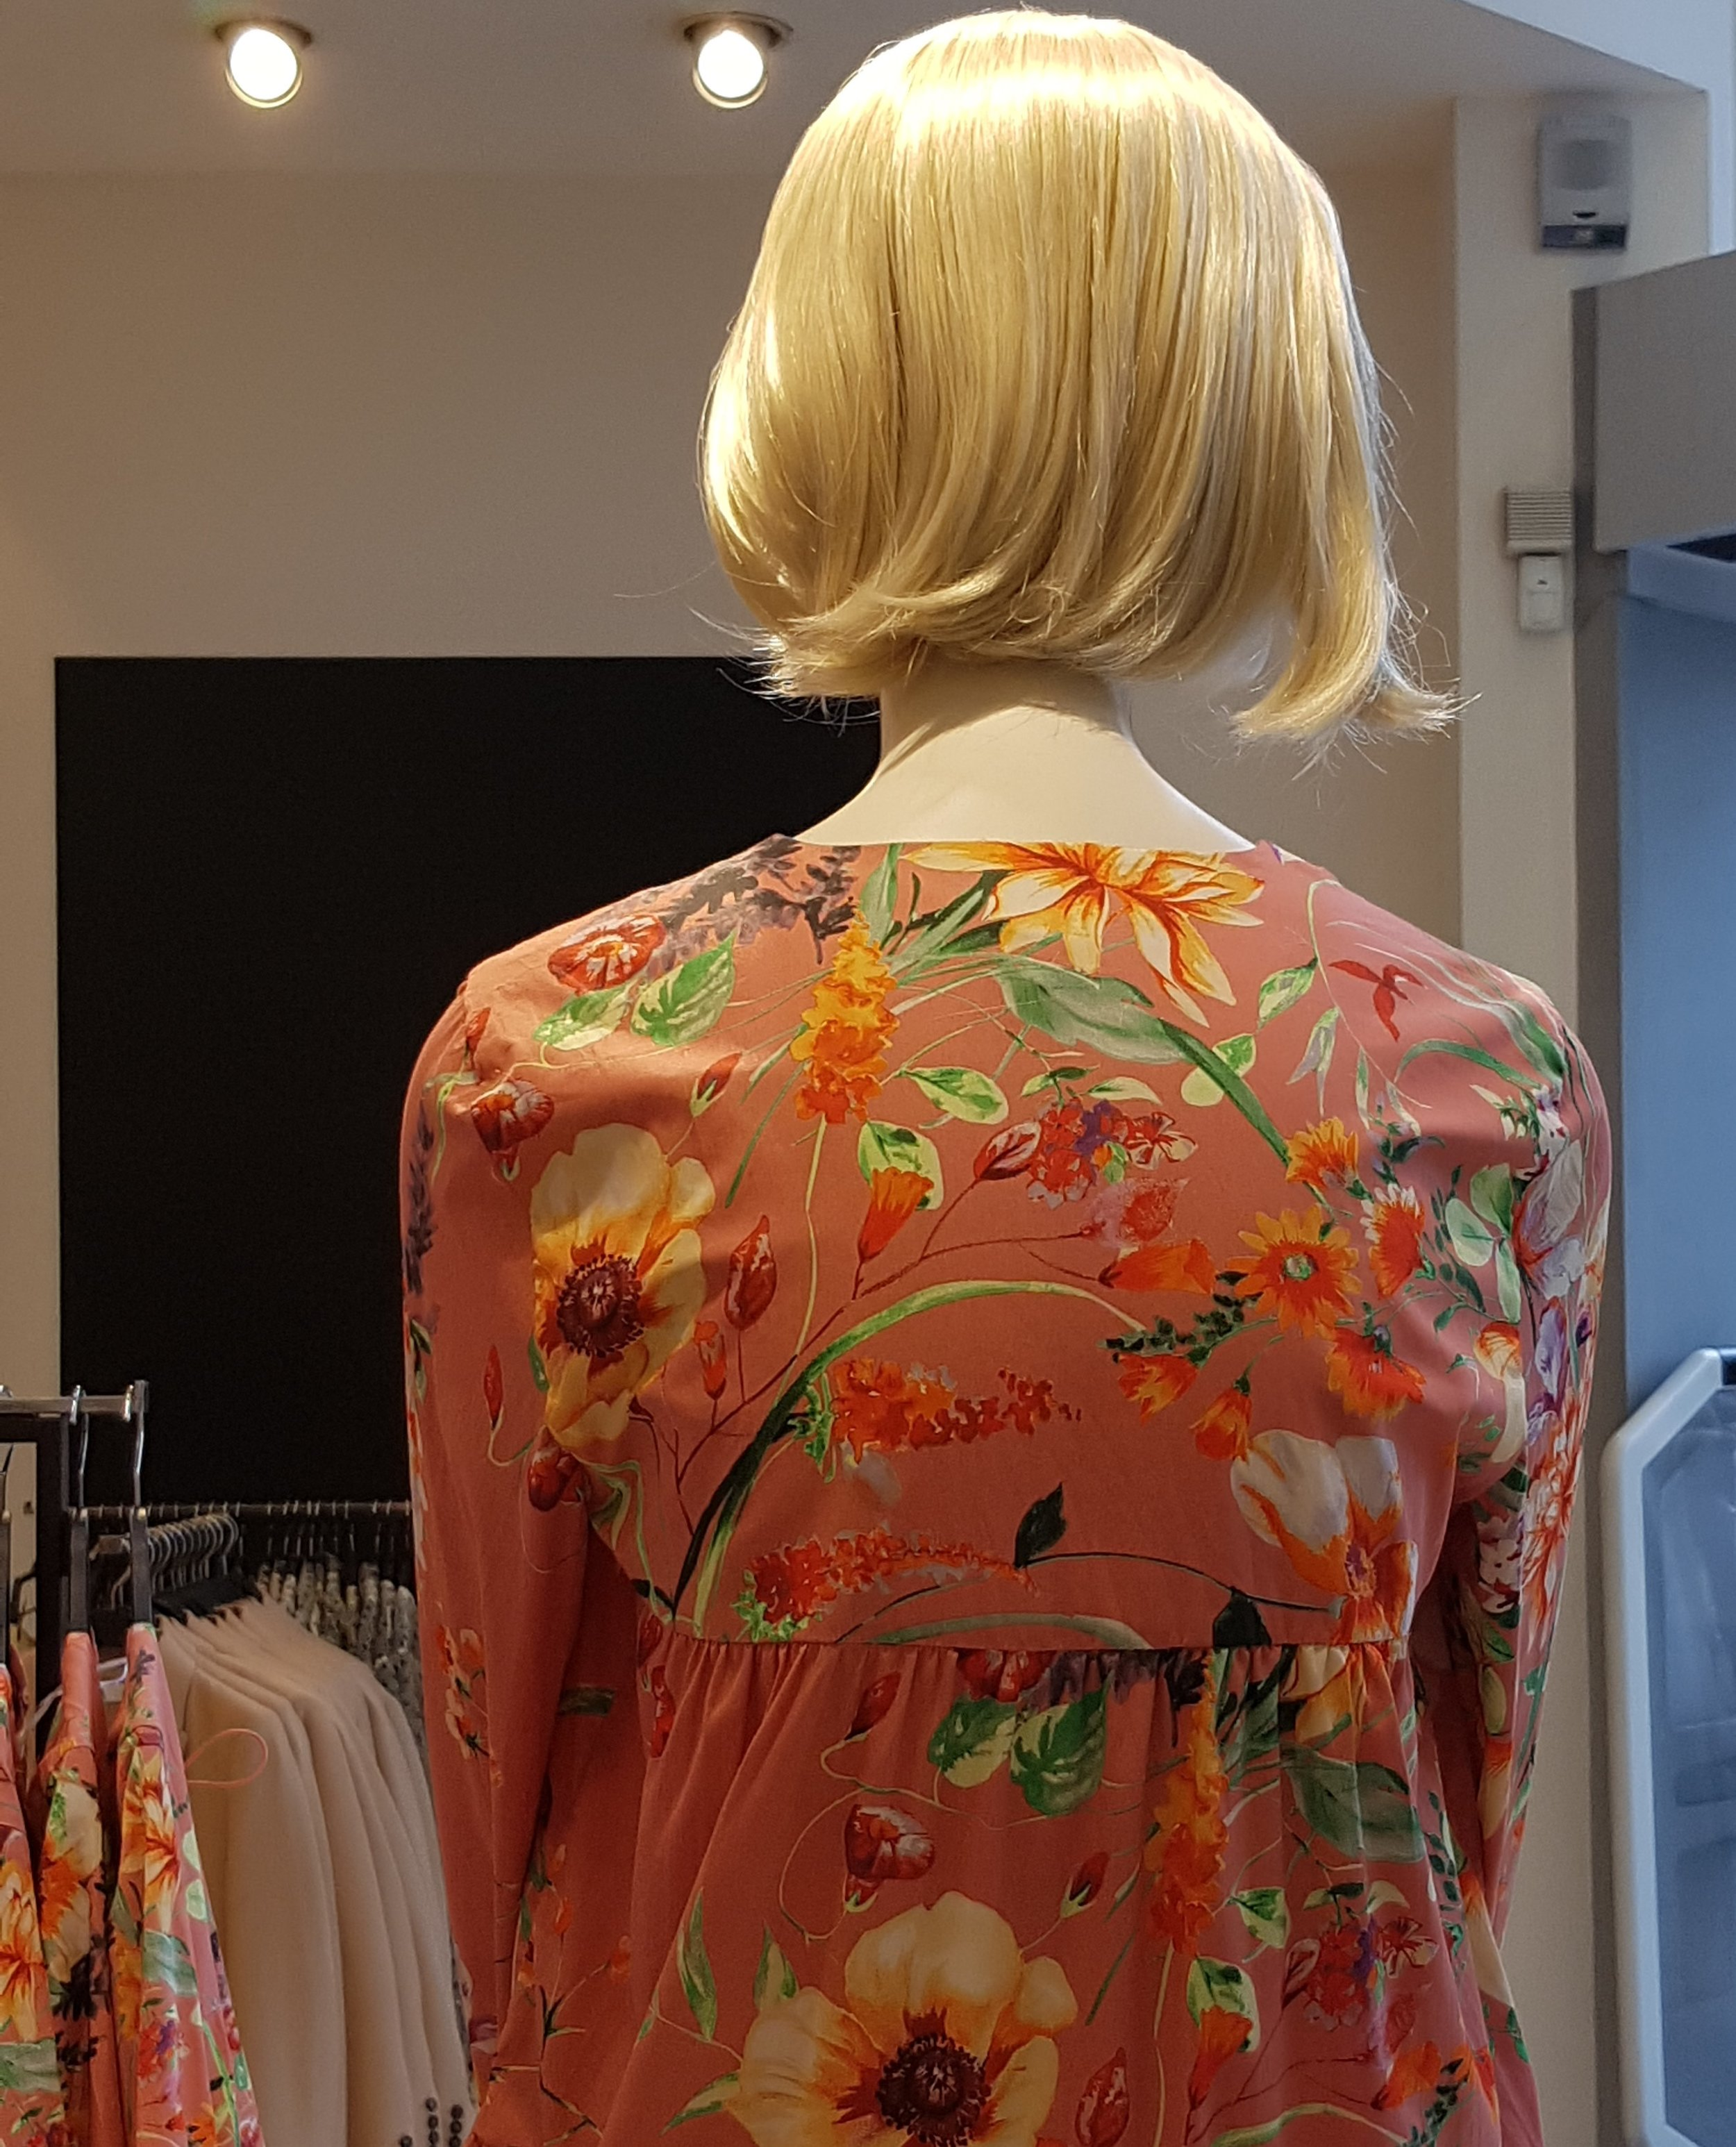 Back view of mannequin in Zara, Oxford Street, London